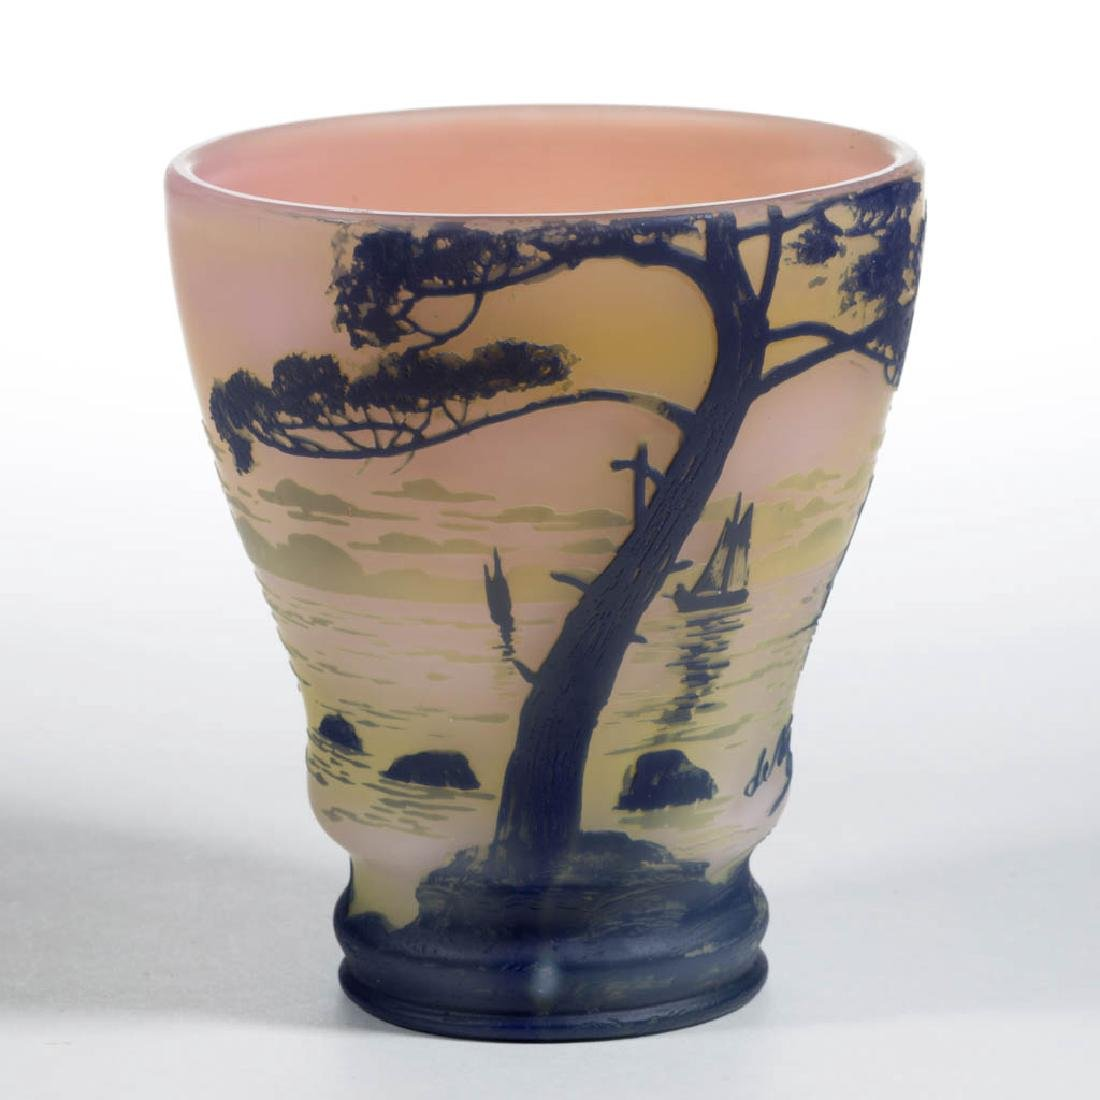 DEVEZ TRI-COLOR LANDSCAPE CAMEO ART GLASS VASE - 3